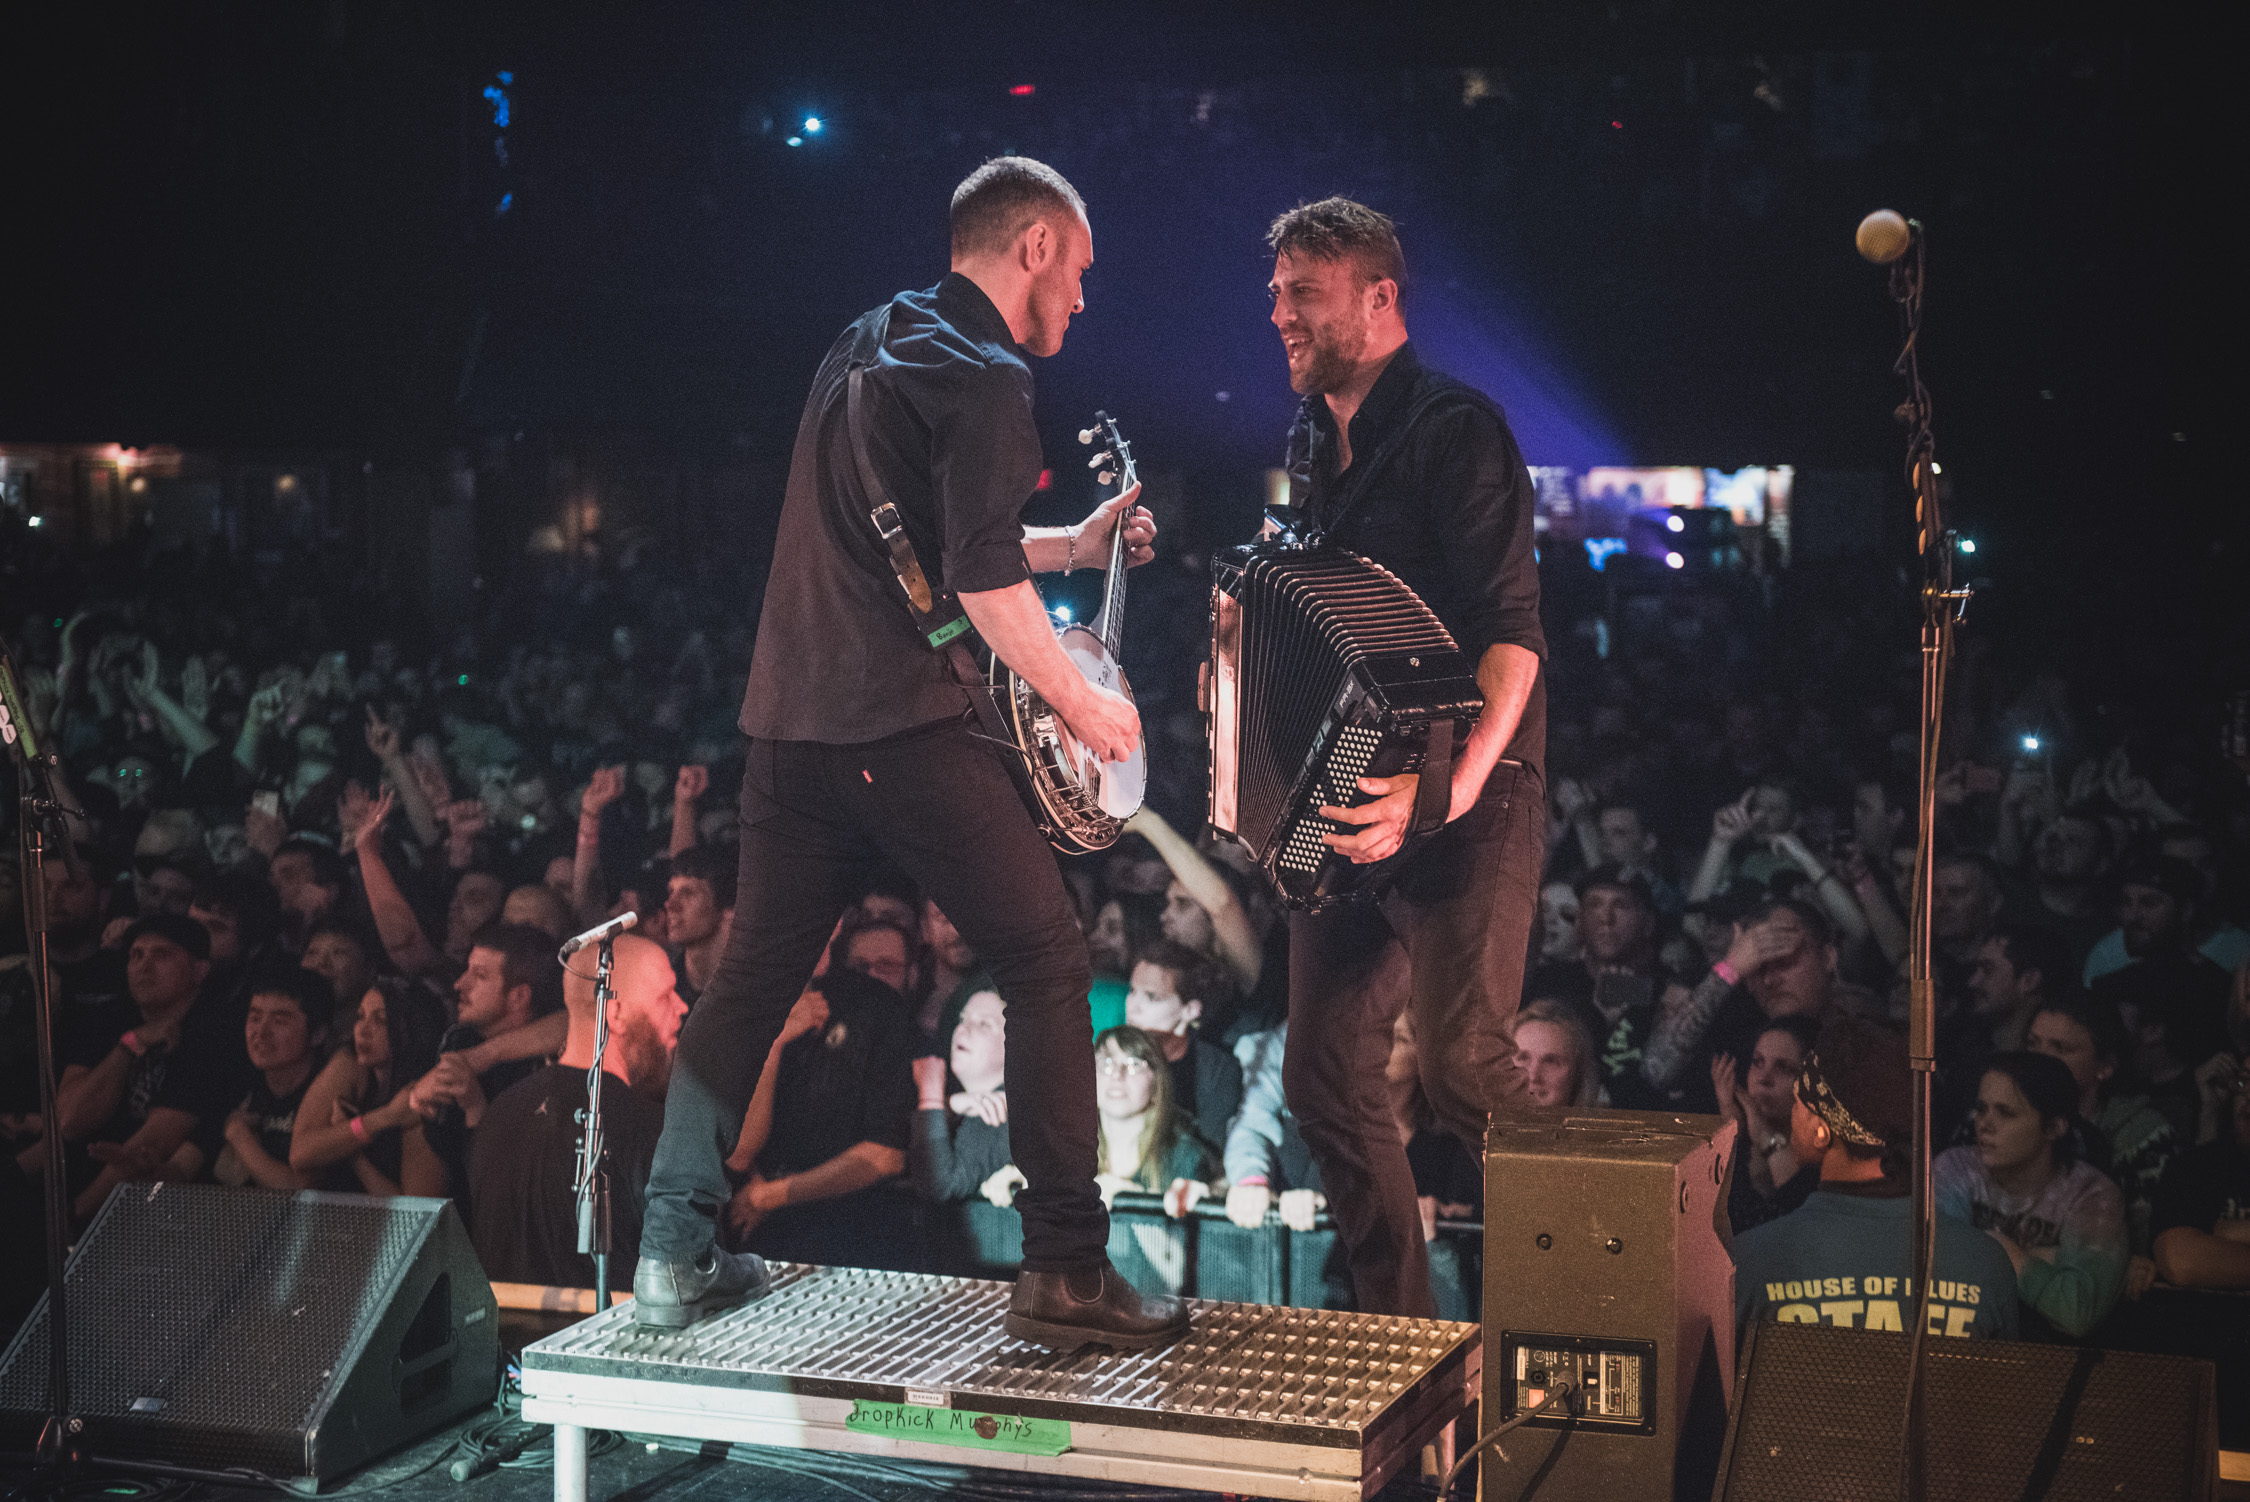 Dropkick Murphys HOB Boston Gregory Nolan 04.18.16 -98.jpg